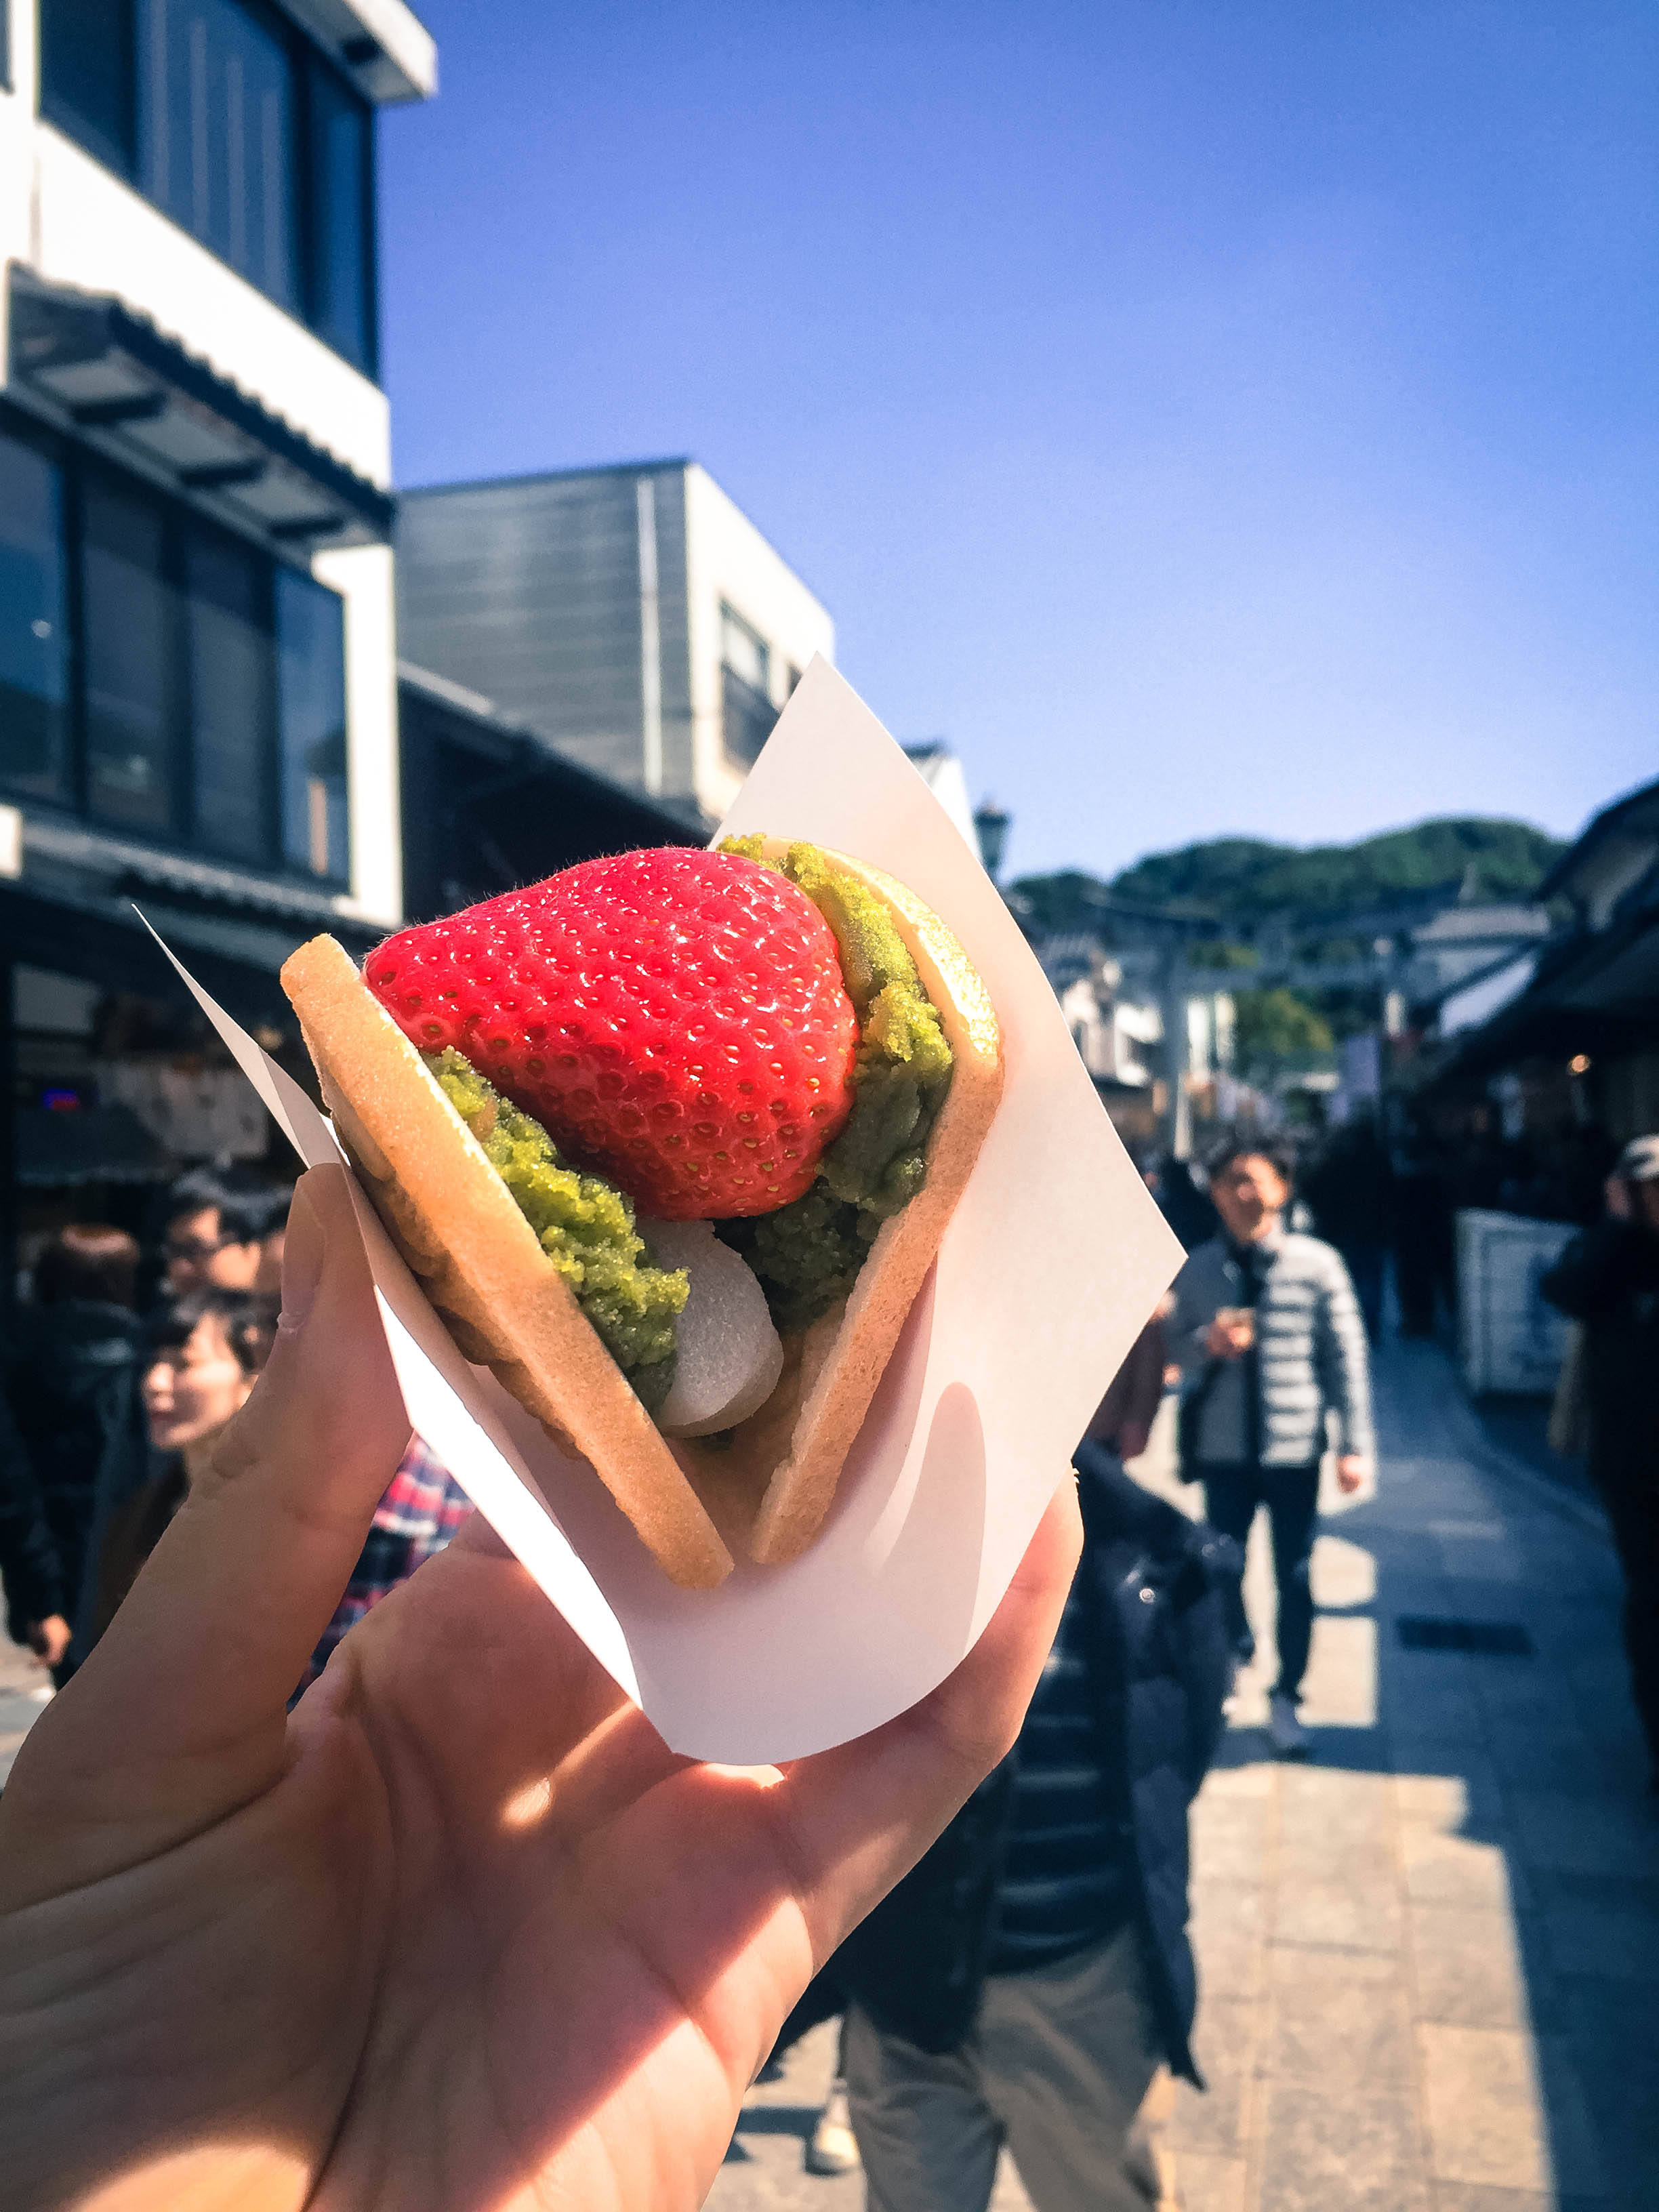 Some form of matcha-strawberry-mochi taco sandwich contraption which was DELICIOUS. It was similar to an ichigo daifuku (strawberry filled mochi).